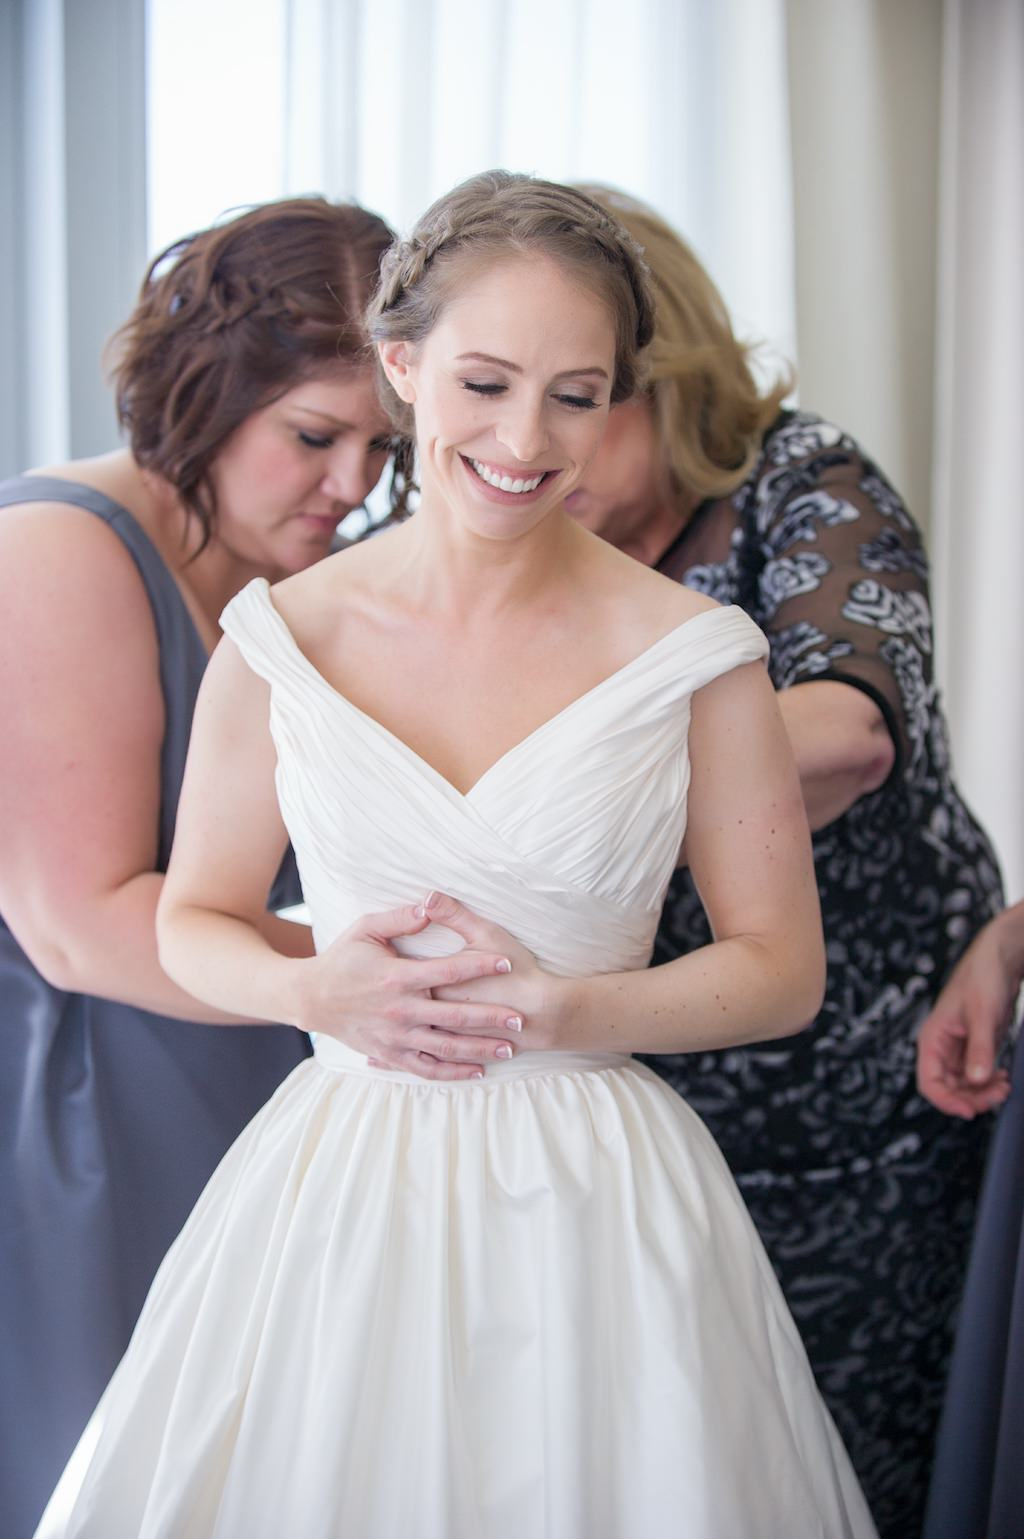 Bride Getting Ready Traditional A-Line Wedding Dress | Clearwater Beach Wedding Photographer Andi Diamond Photography